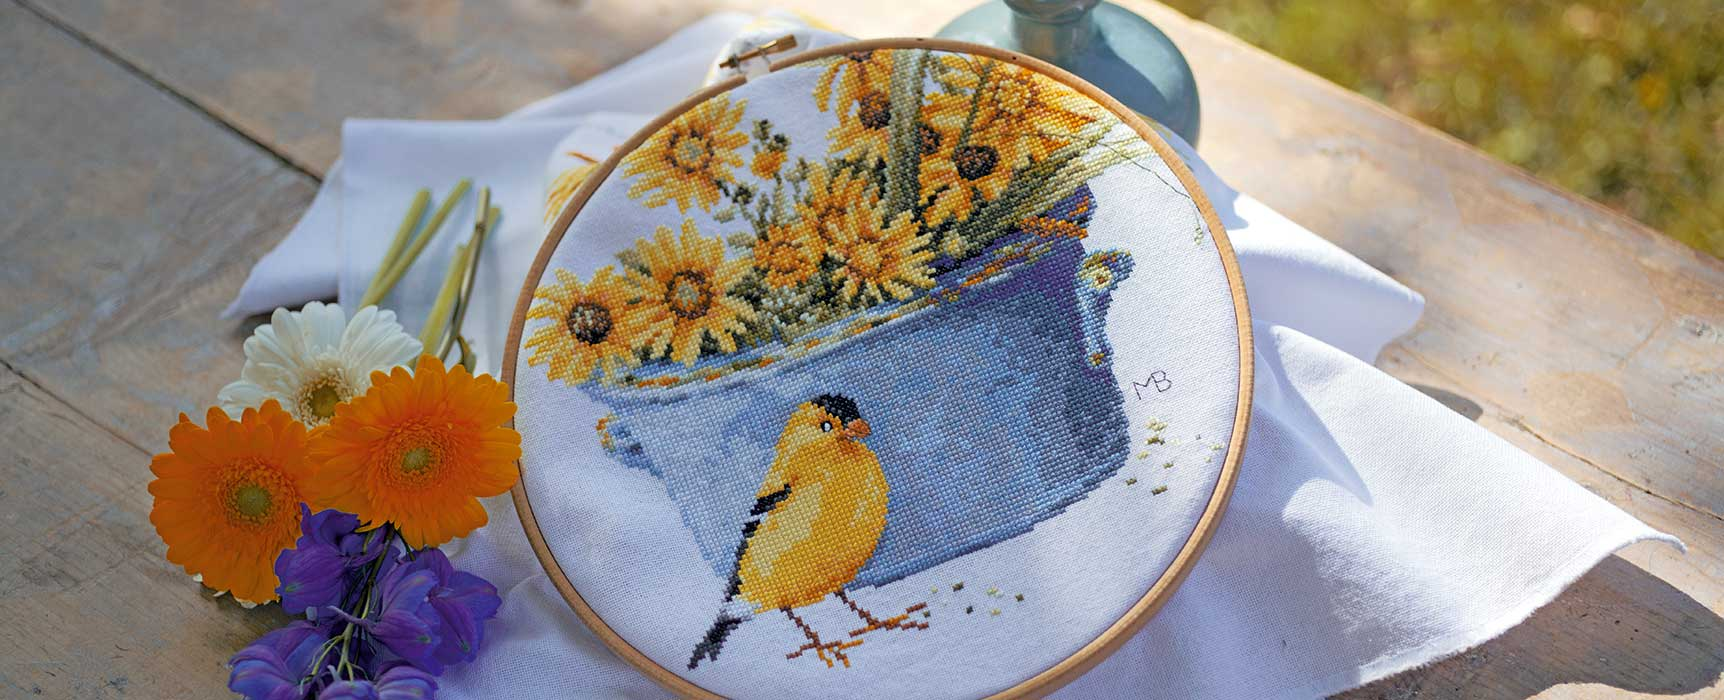 Counted-cross-stitch-kit-Helianthus-sunflowers